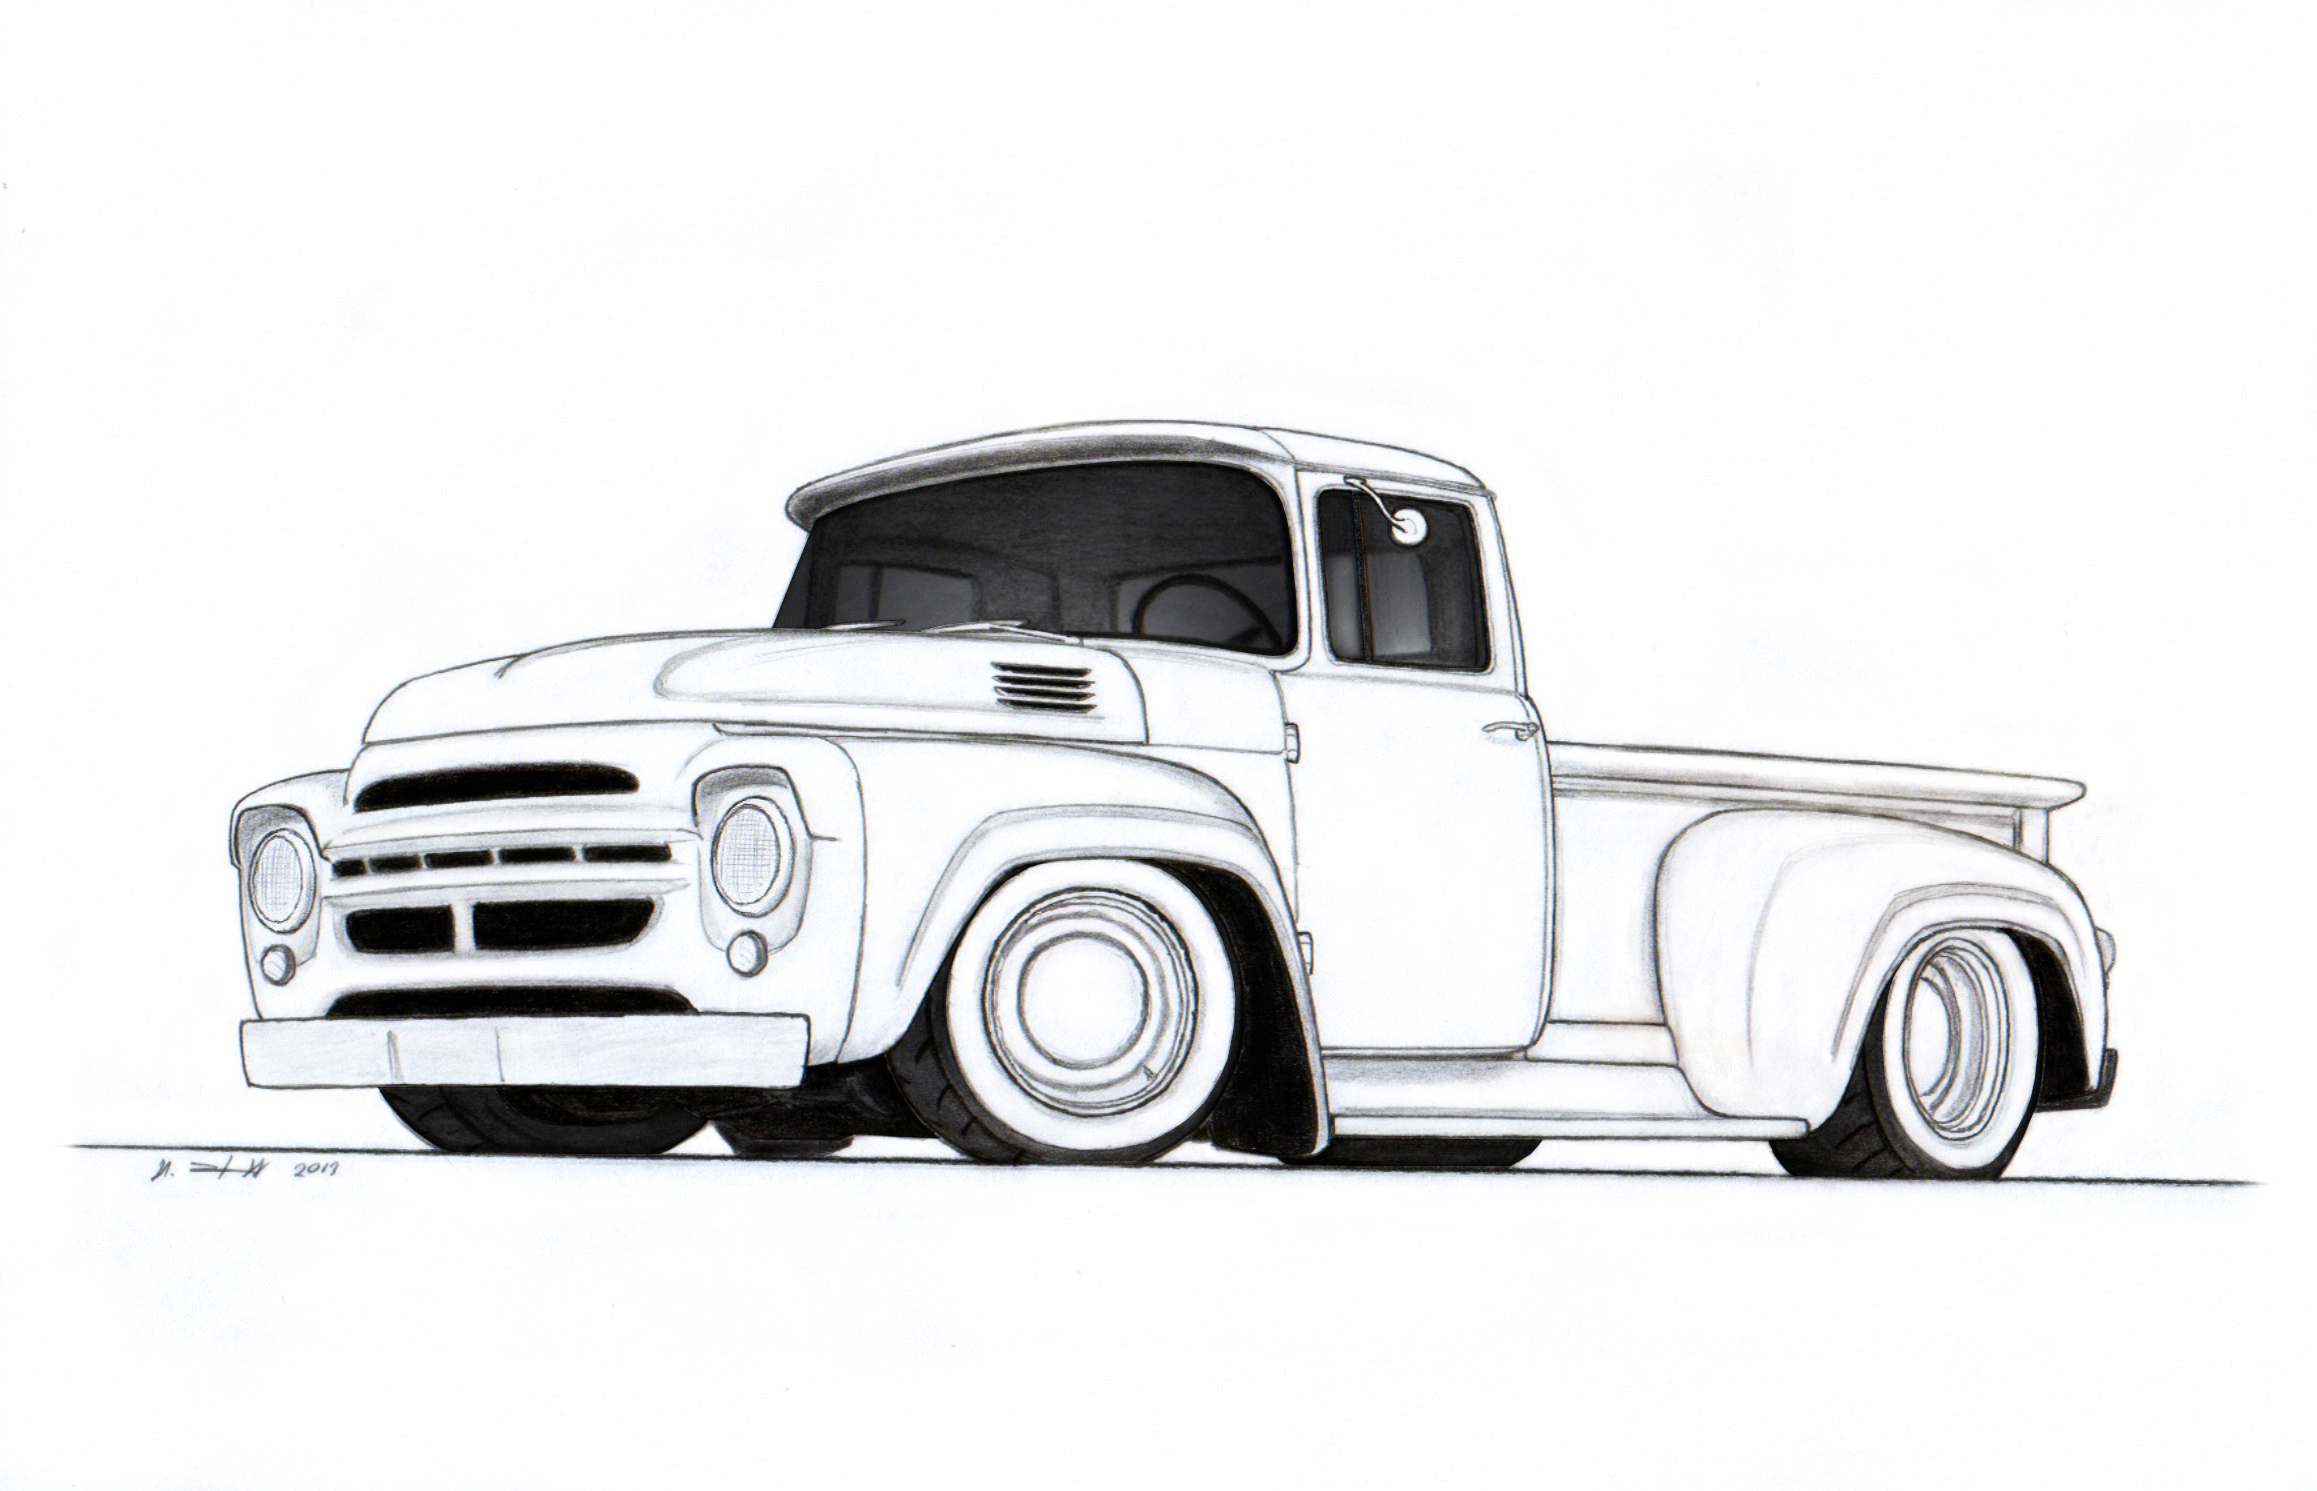 Uncategorized Drawing Trucks 1964 zil 130 stepside custom pickup truck drawing by vertualissimo vertualissimo